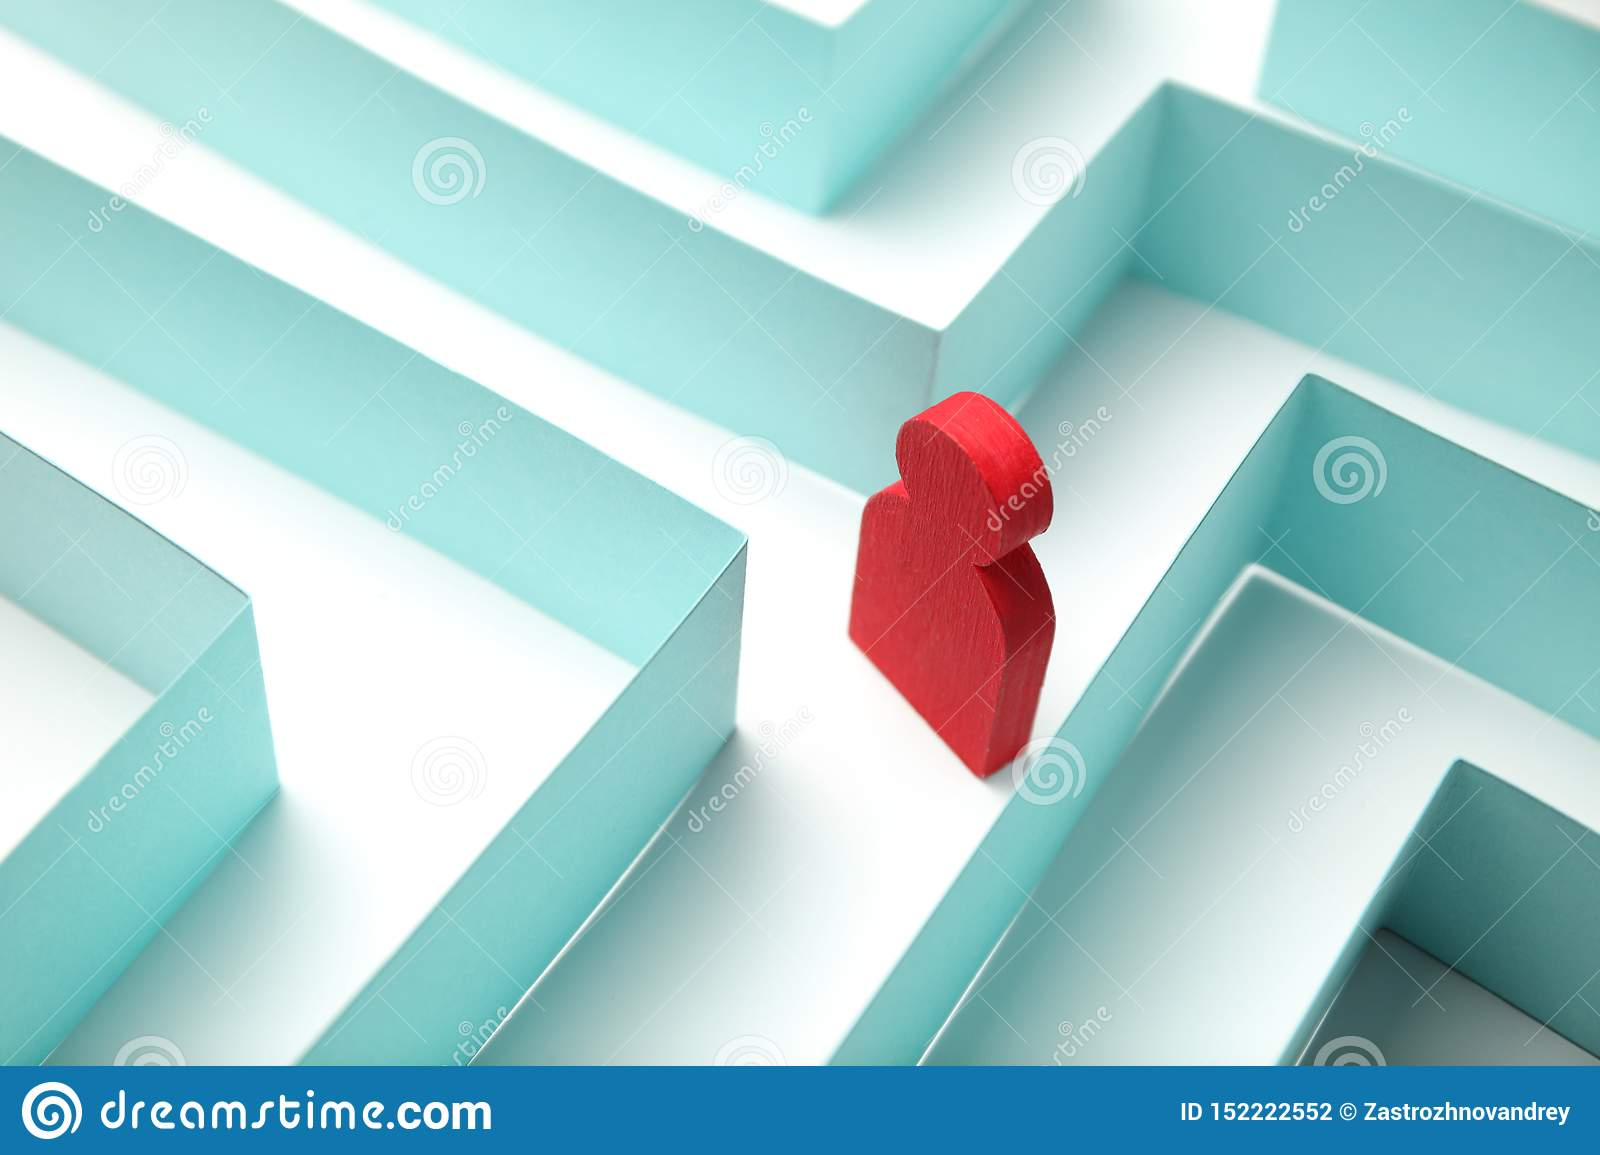 The figure of the person is looking for a way out of the maze, a solution to the problem